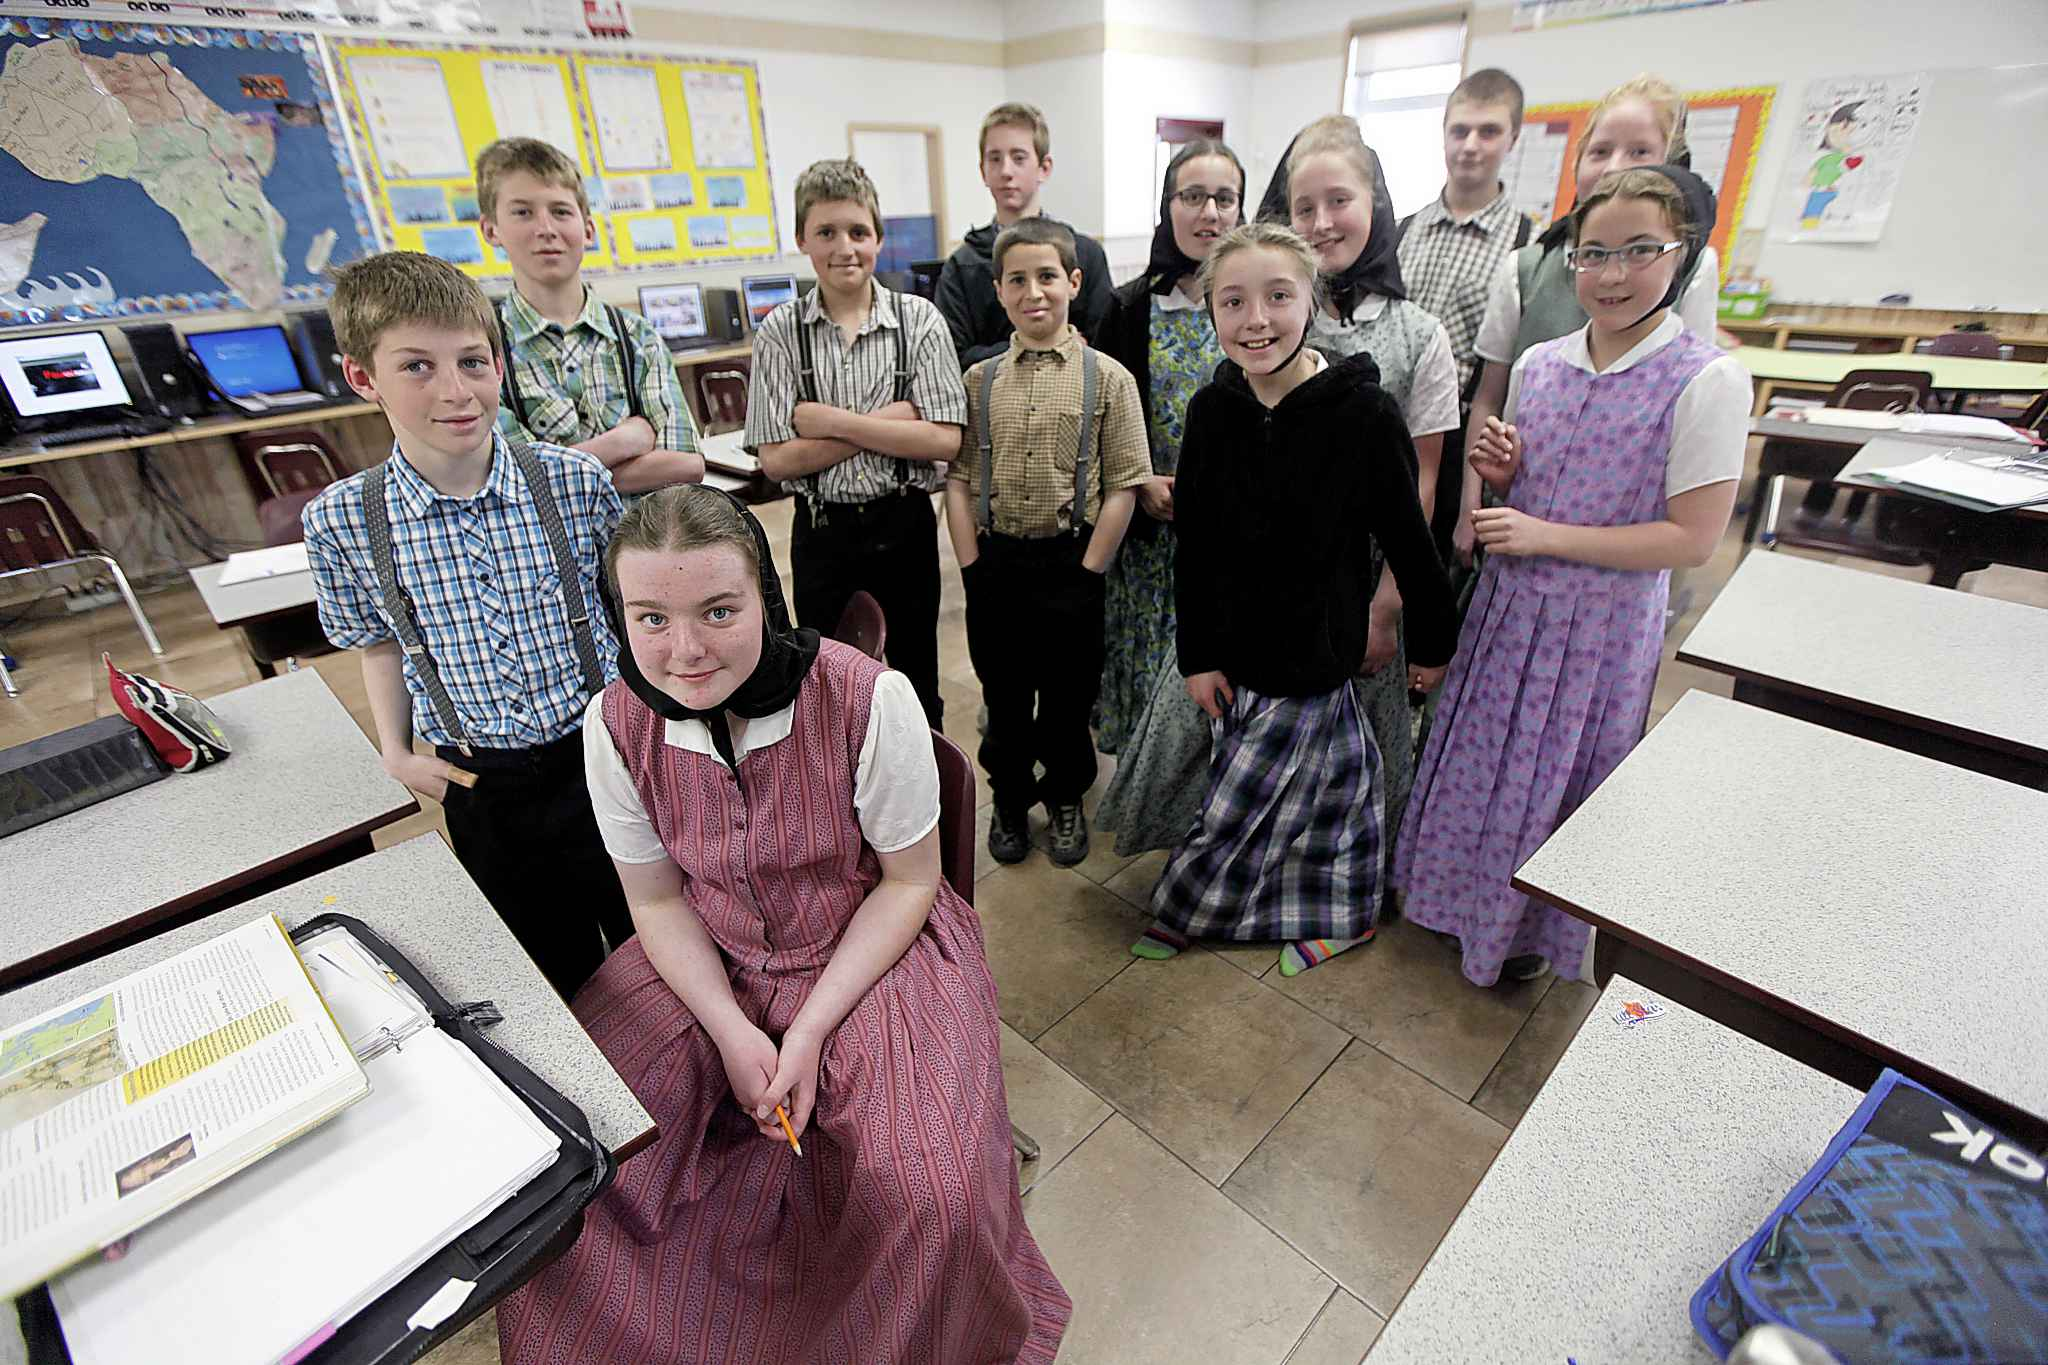 PHIL HOSSACK/Winnipeg Free Press 